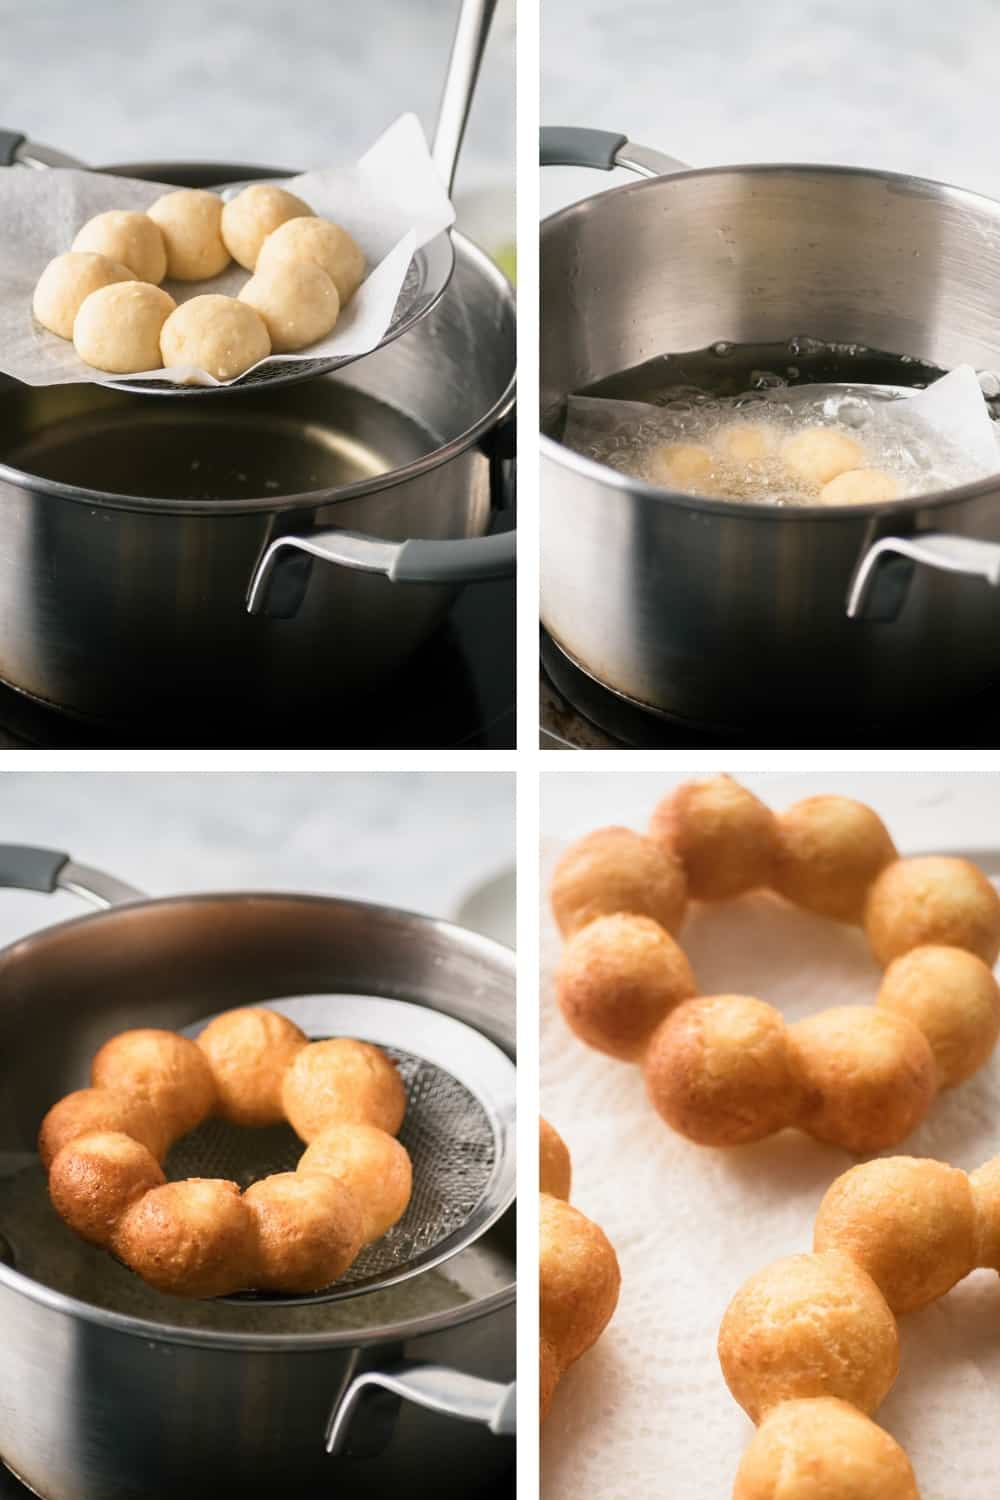 A four way picture showing the process of frying mochi donuts.